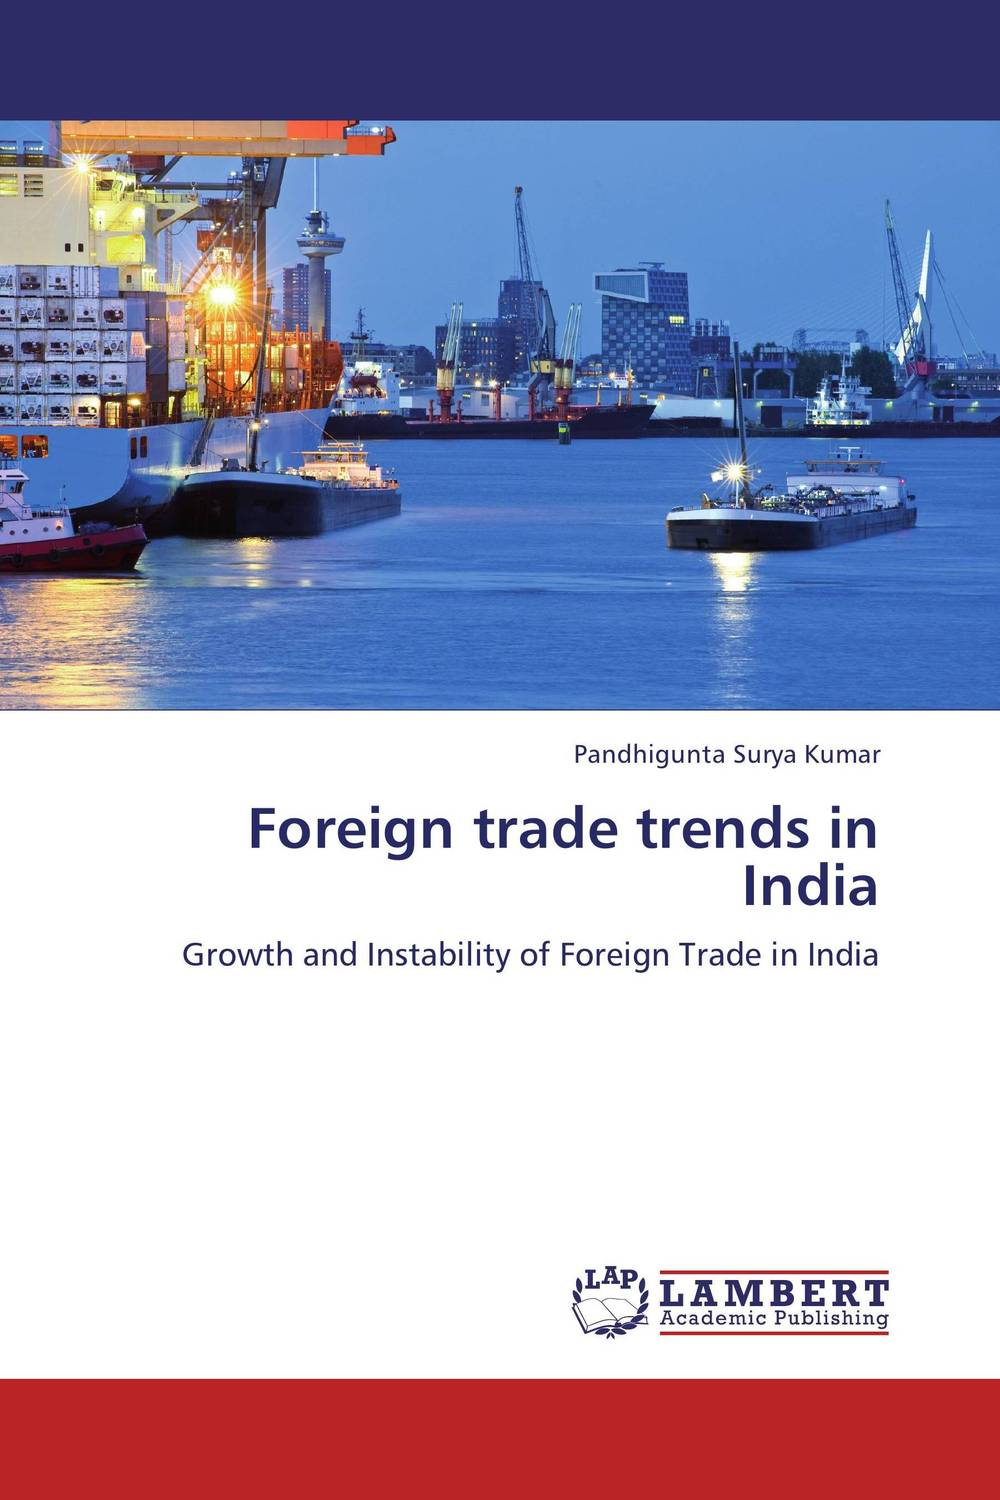 Foreign trade trends in India ishak mesic global trends in retail trade